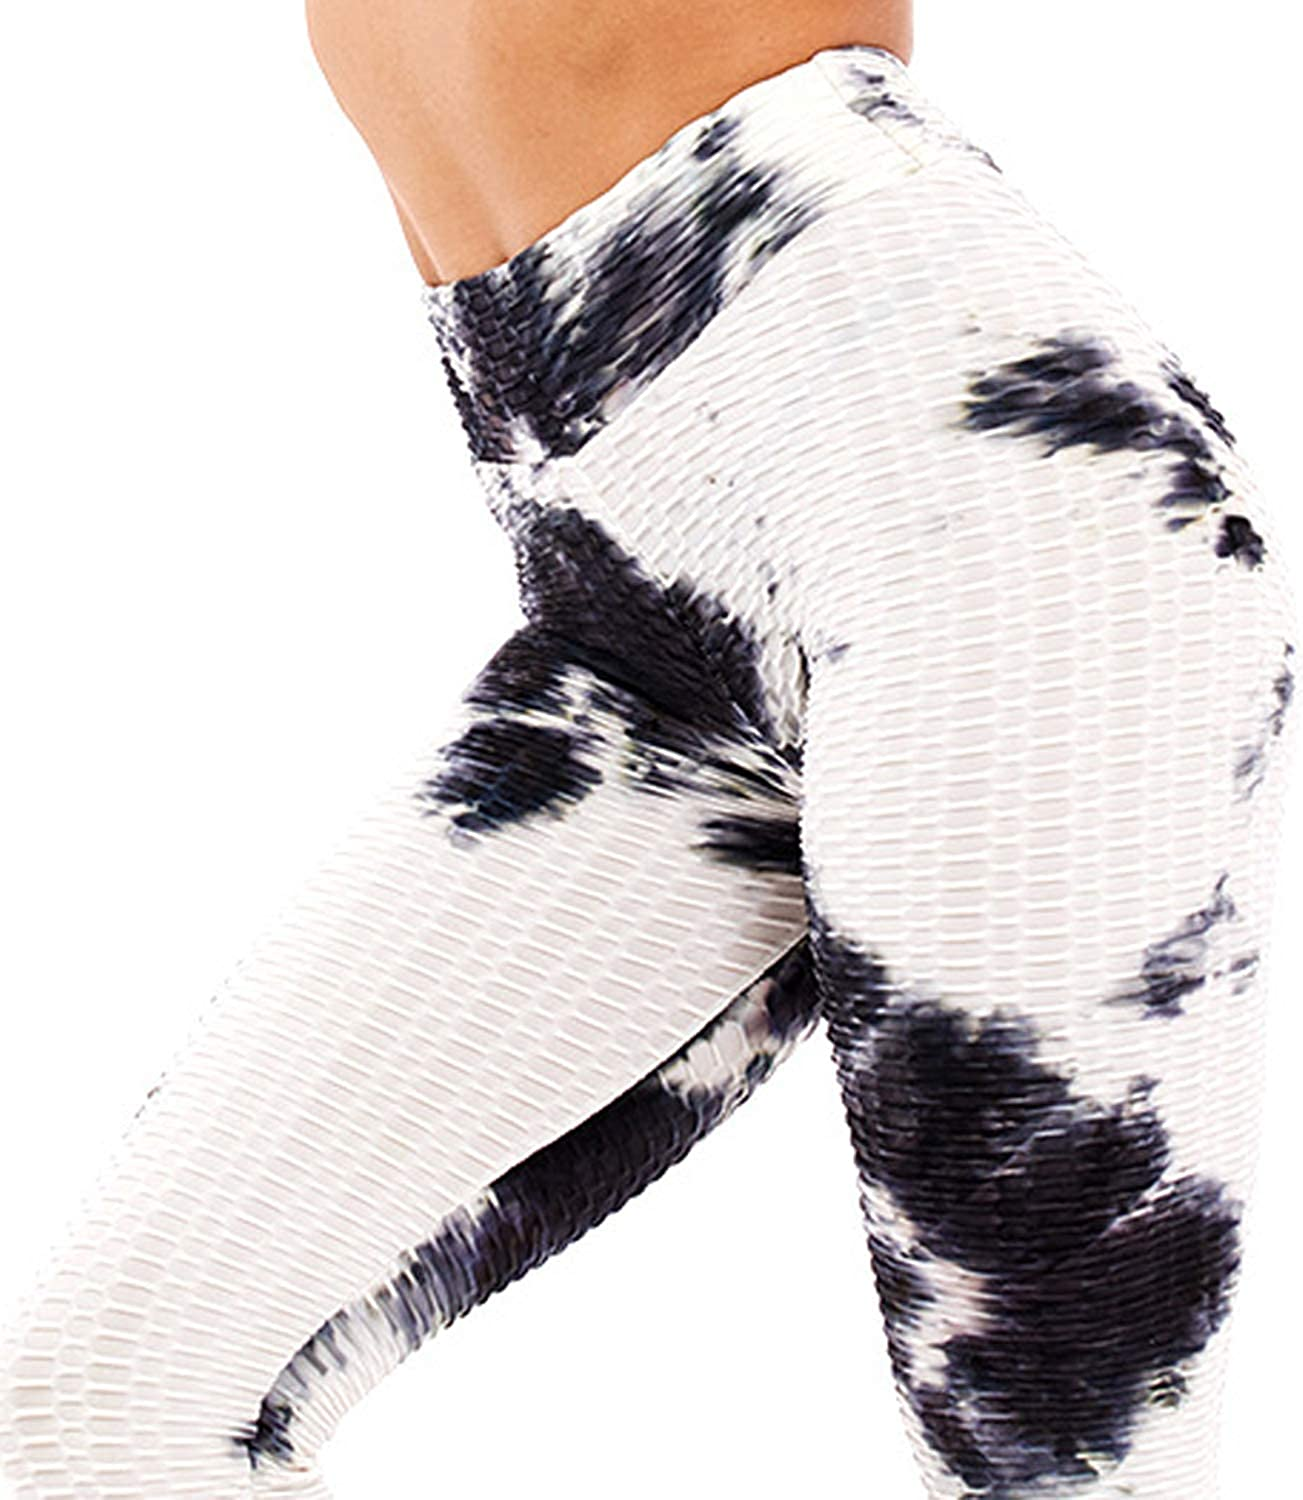 Scrunch Booty Yoga Pants Ruched Butt Lifting Sport Tights BITSEACOCO High Waisted Workout Yoga Leggings for Women